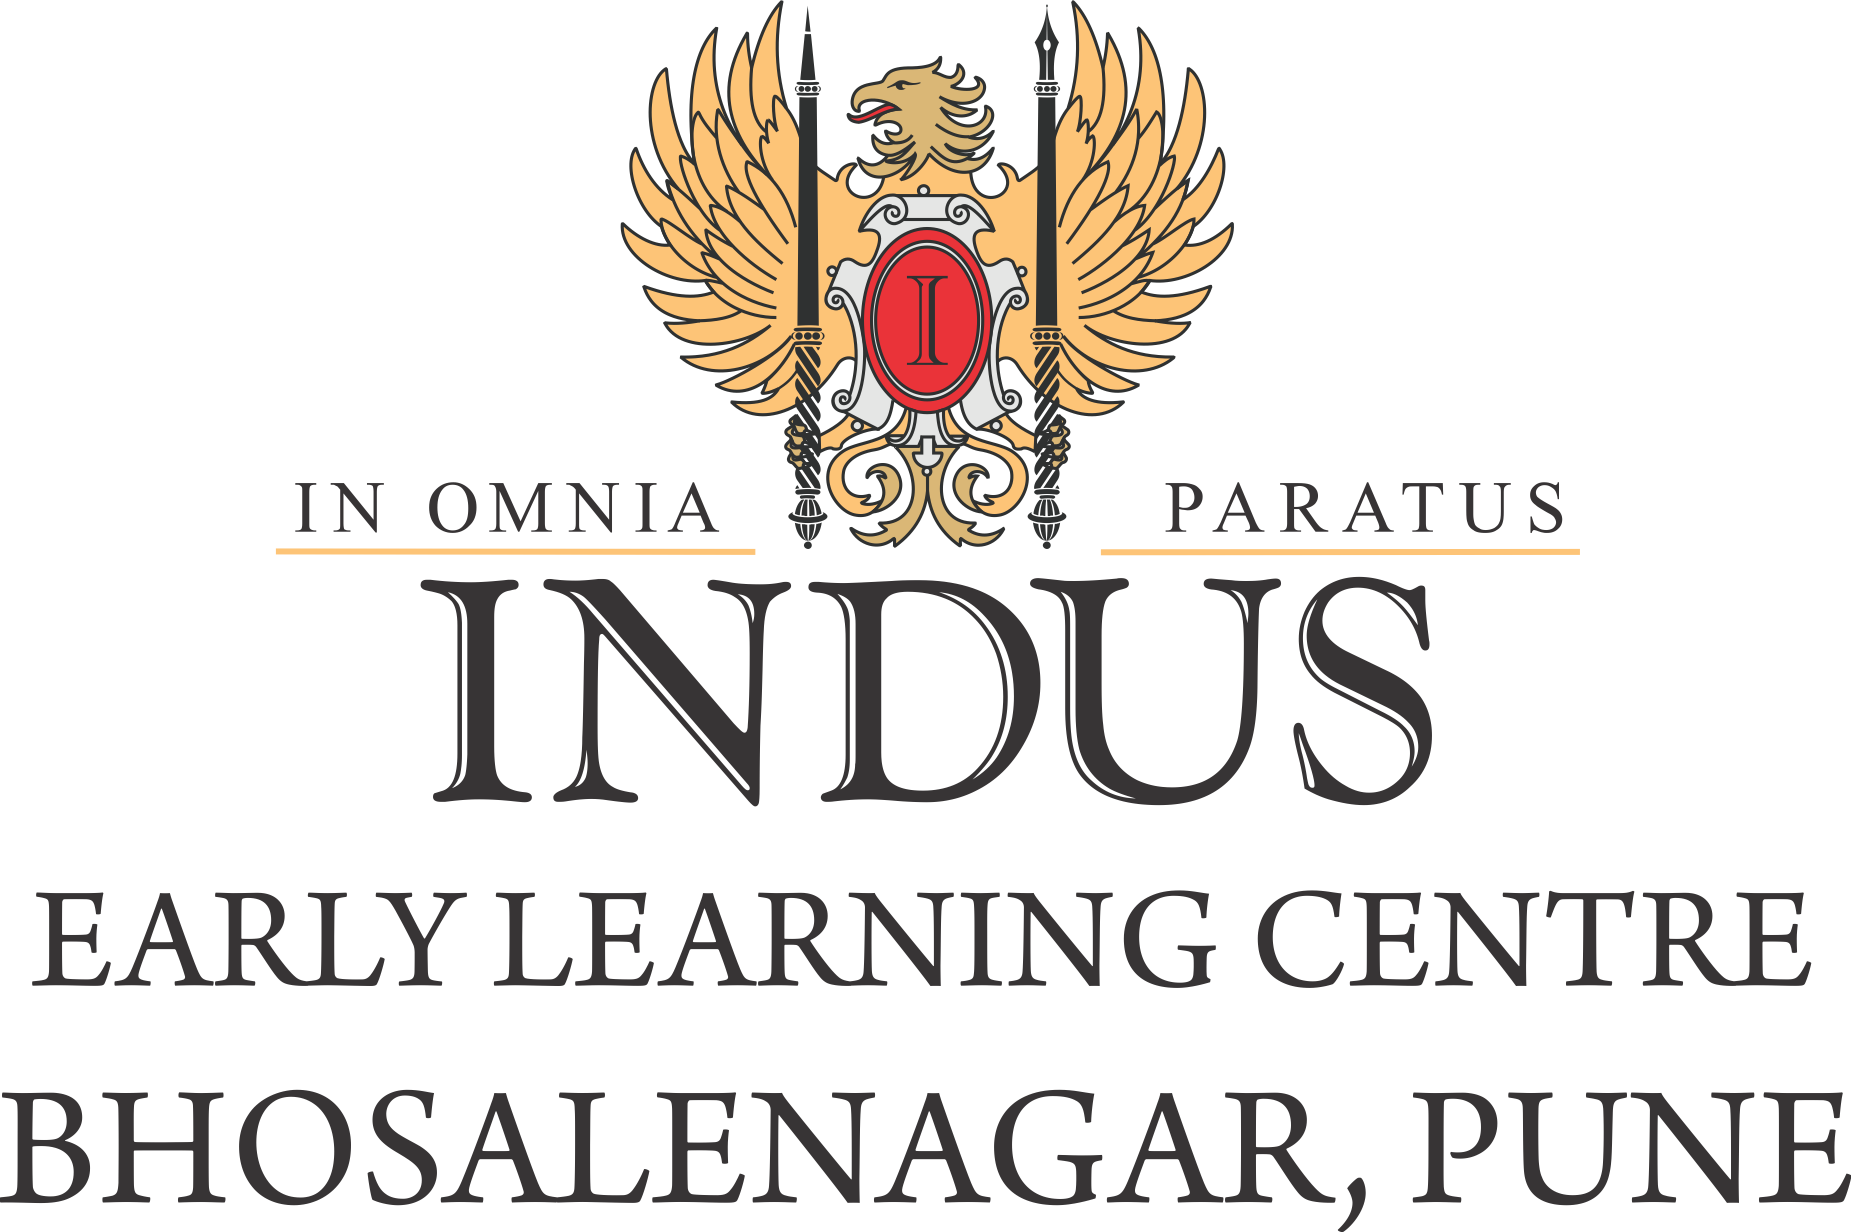 Indus Early Learning Centre - Bhosalenagar - Pune Image